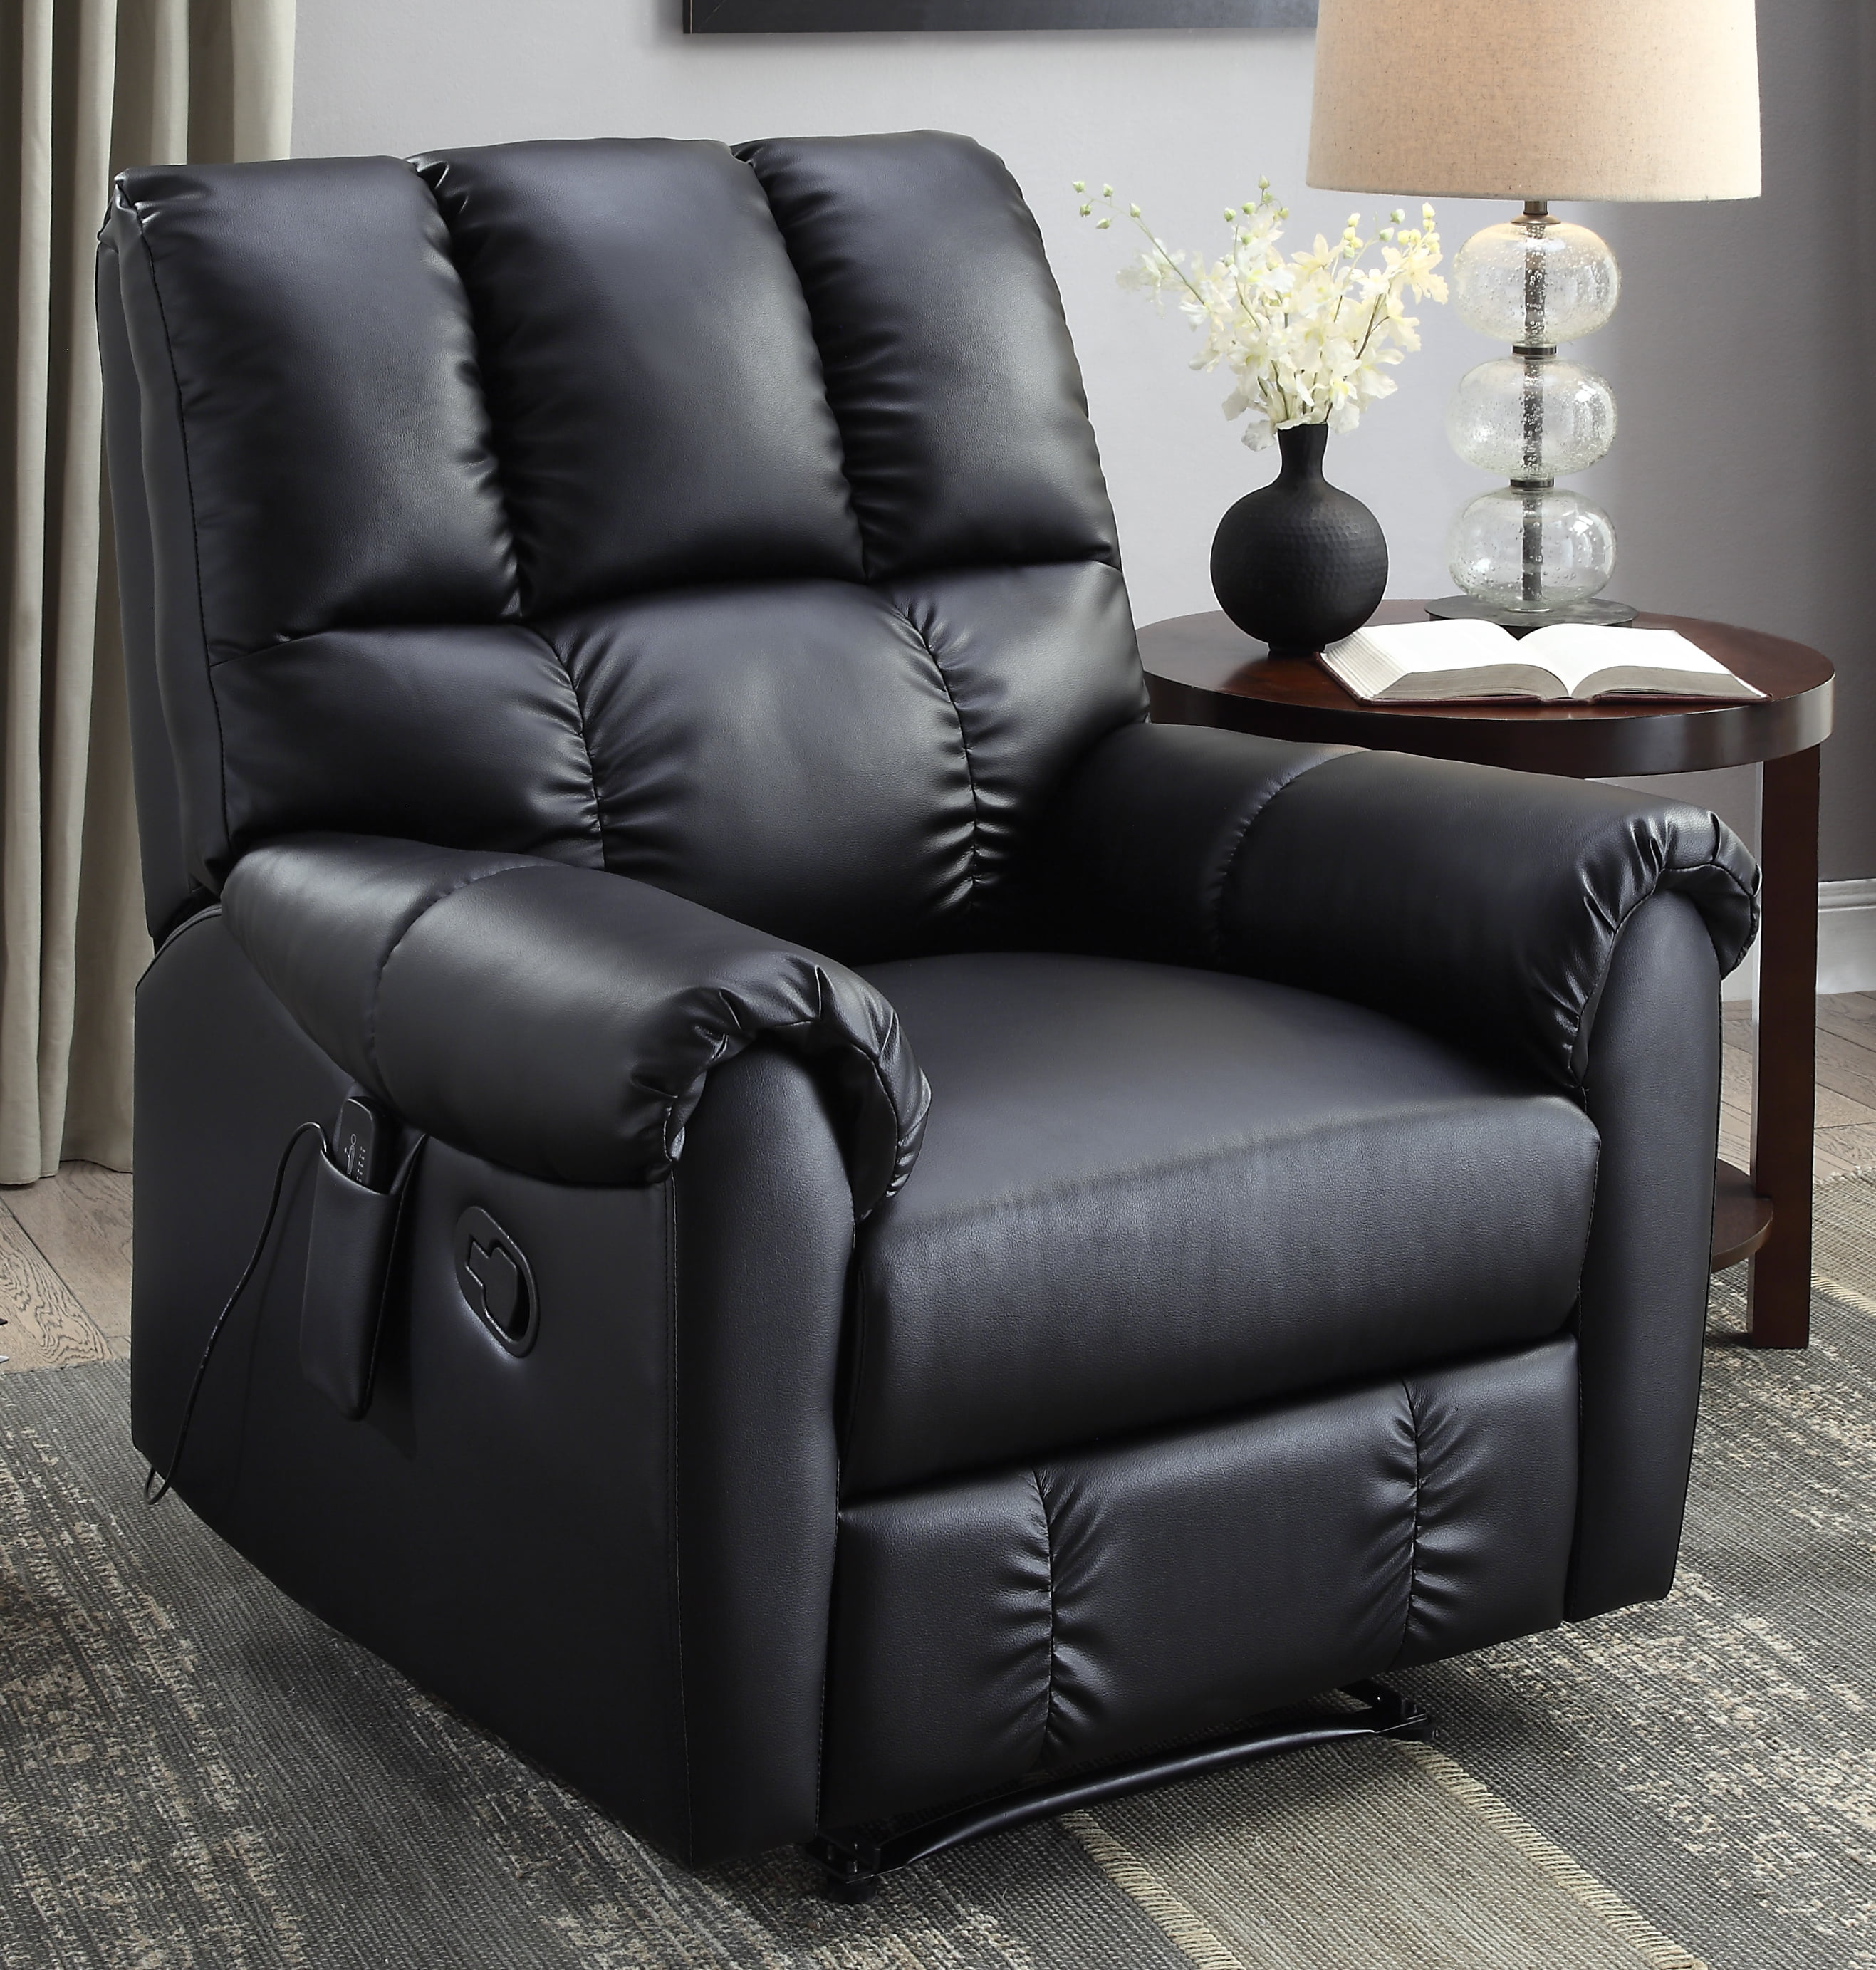 Flash Furniture Massaging Leather Recliner And Ottoman, Black   Walmart.com